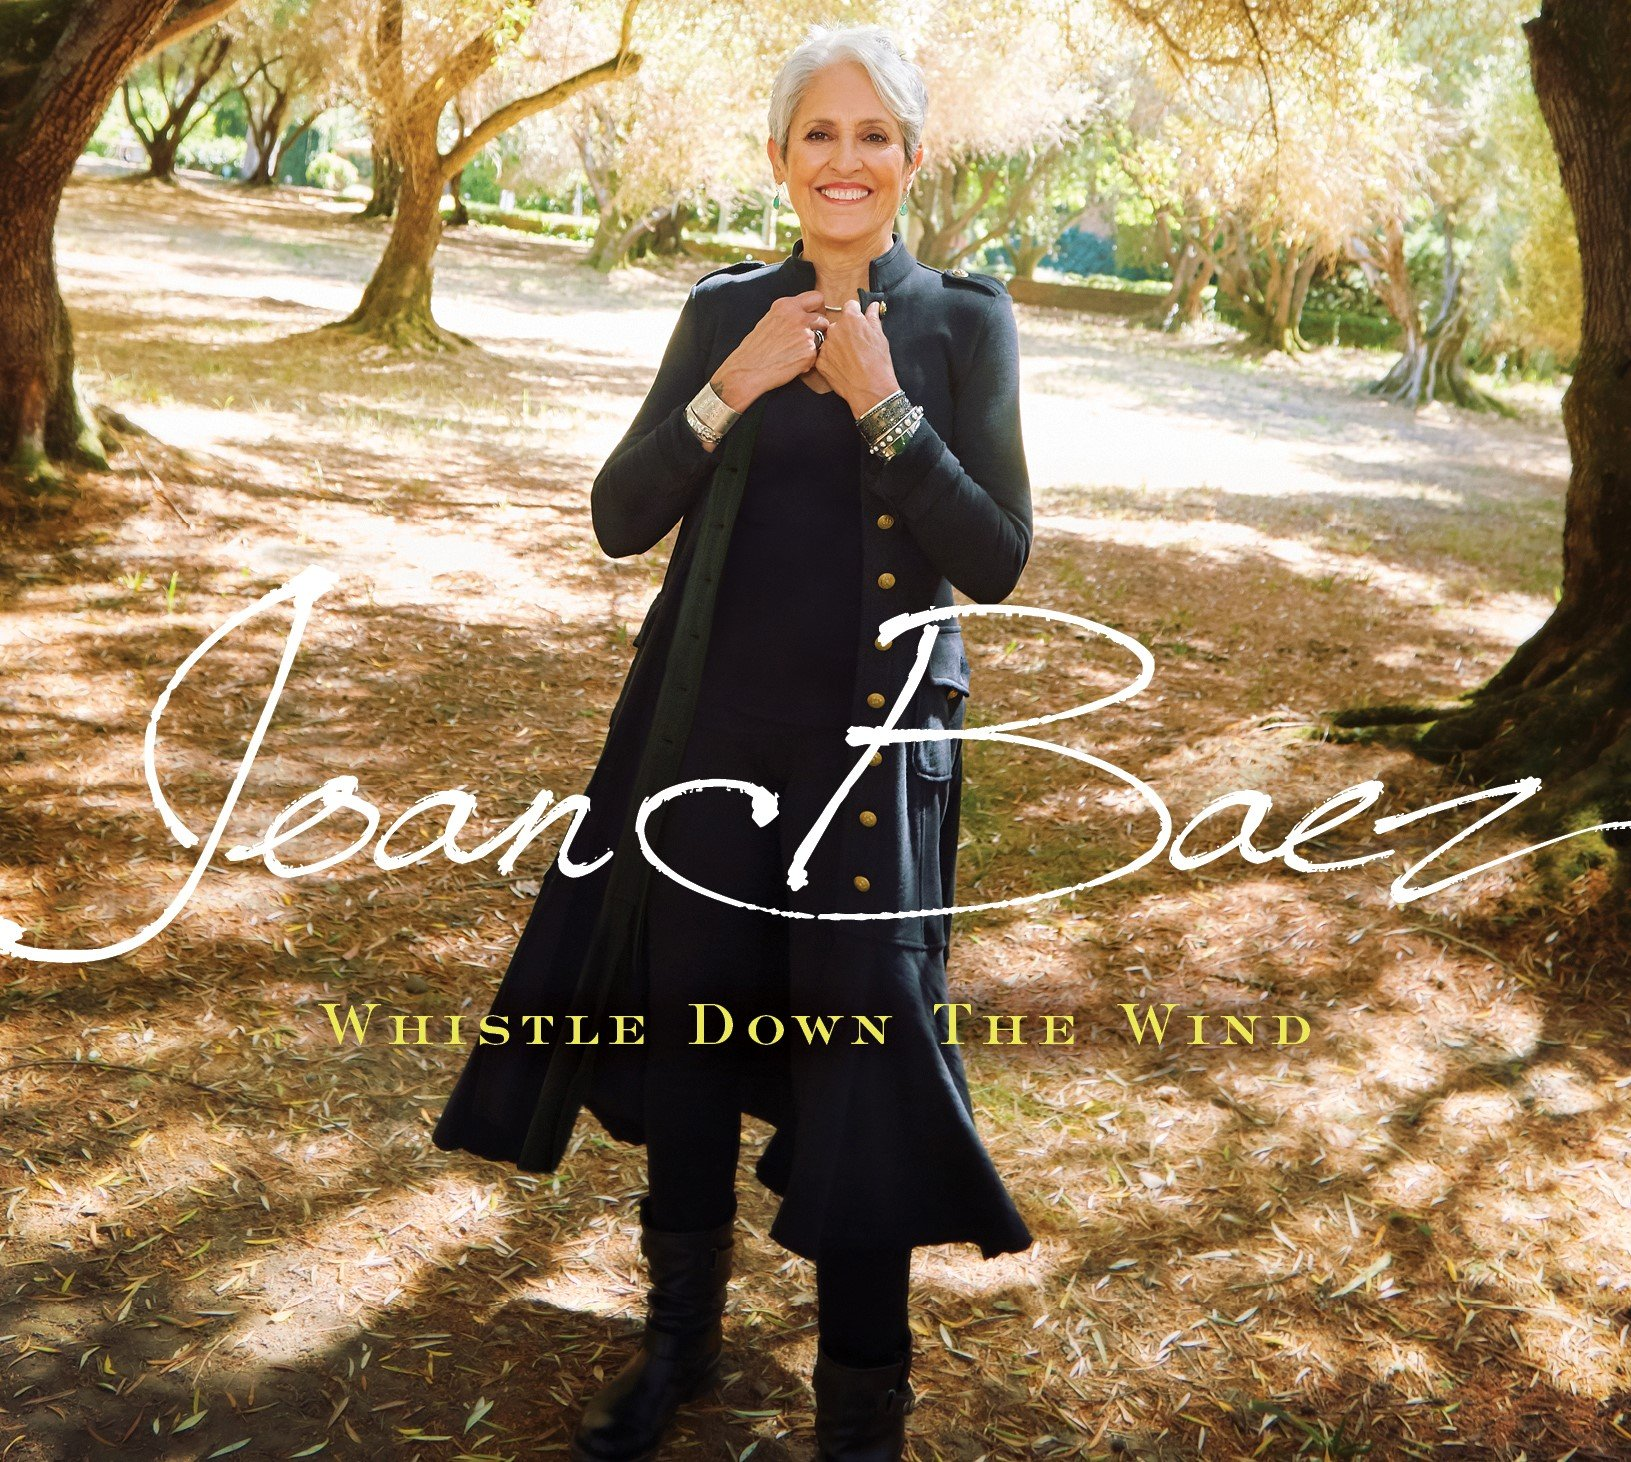 Joan Baez - Whistle Down The Wind (Gatefold LP Jacket)